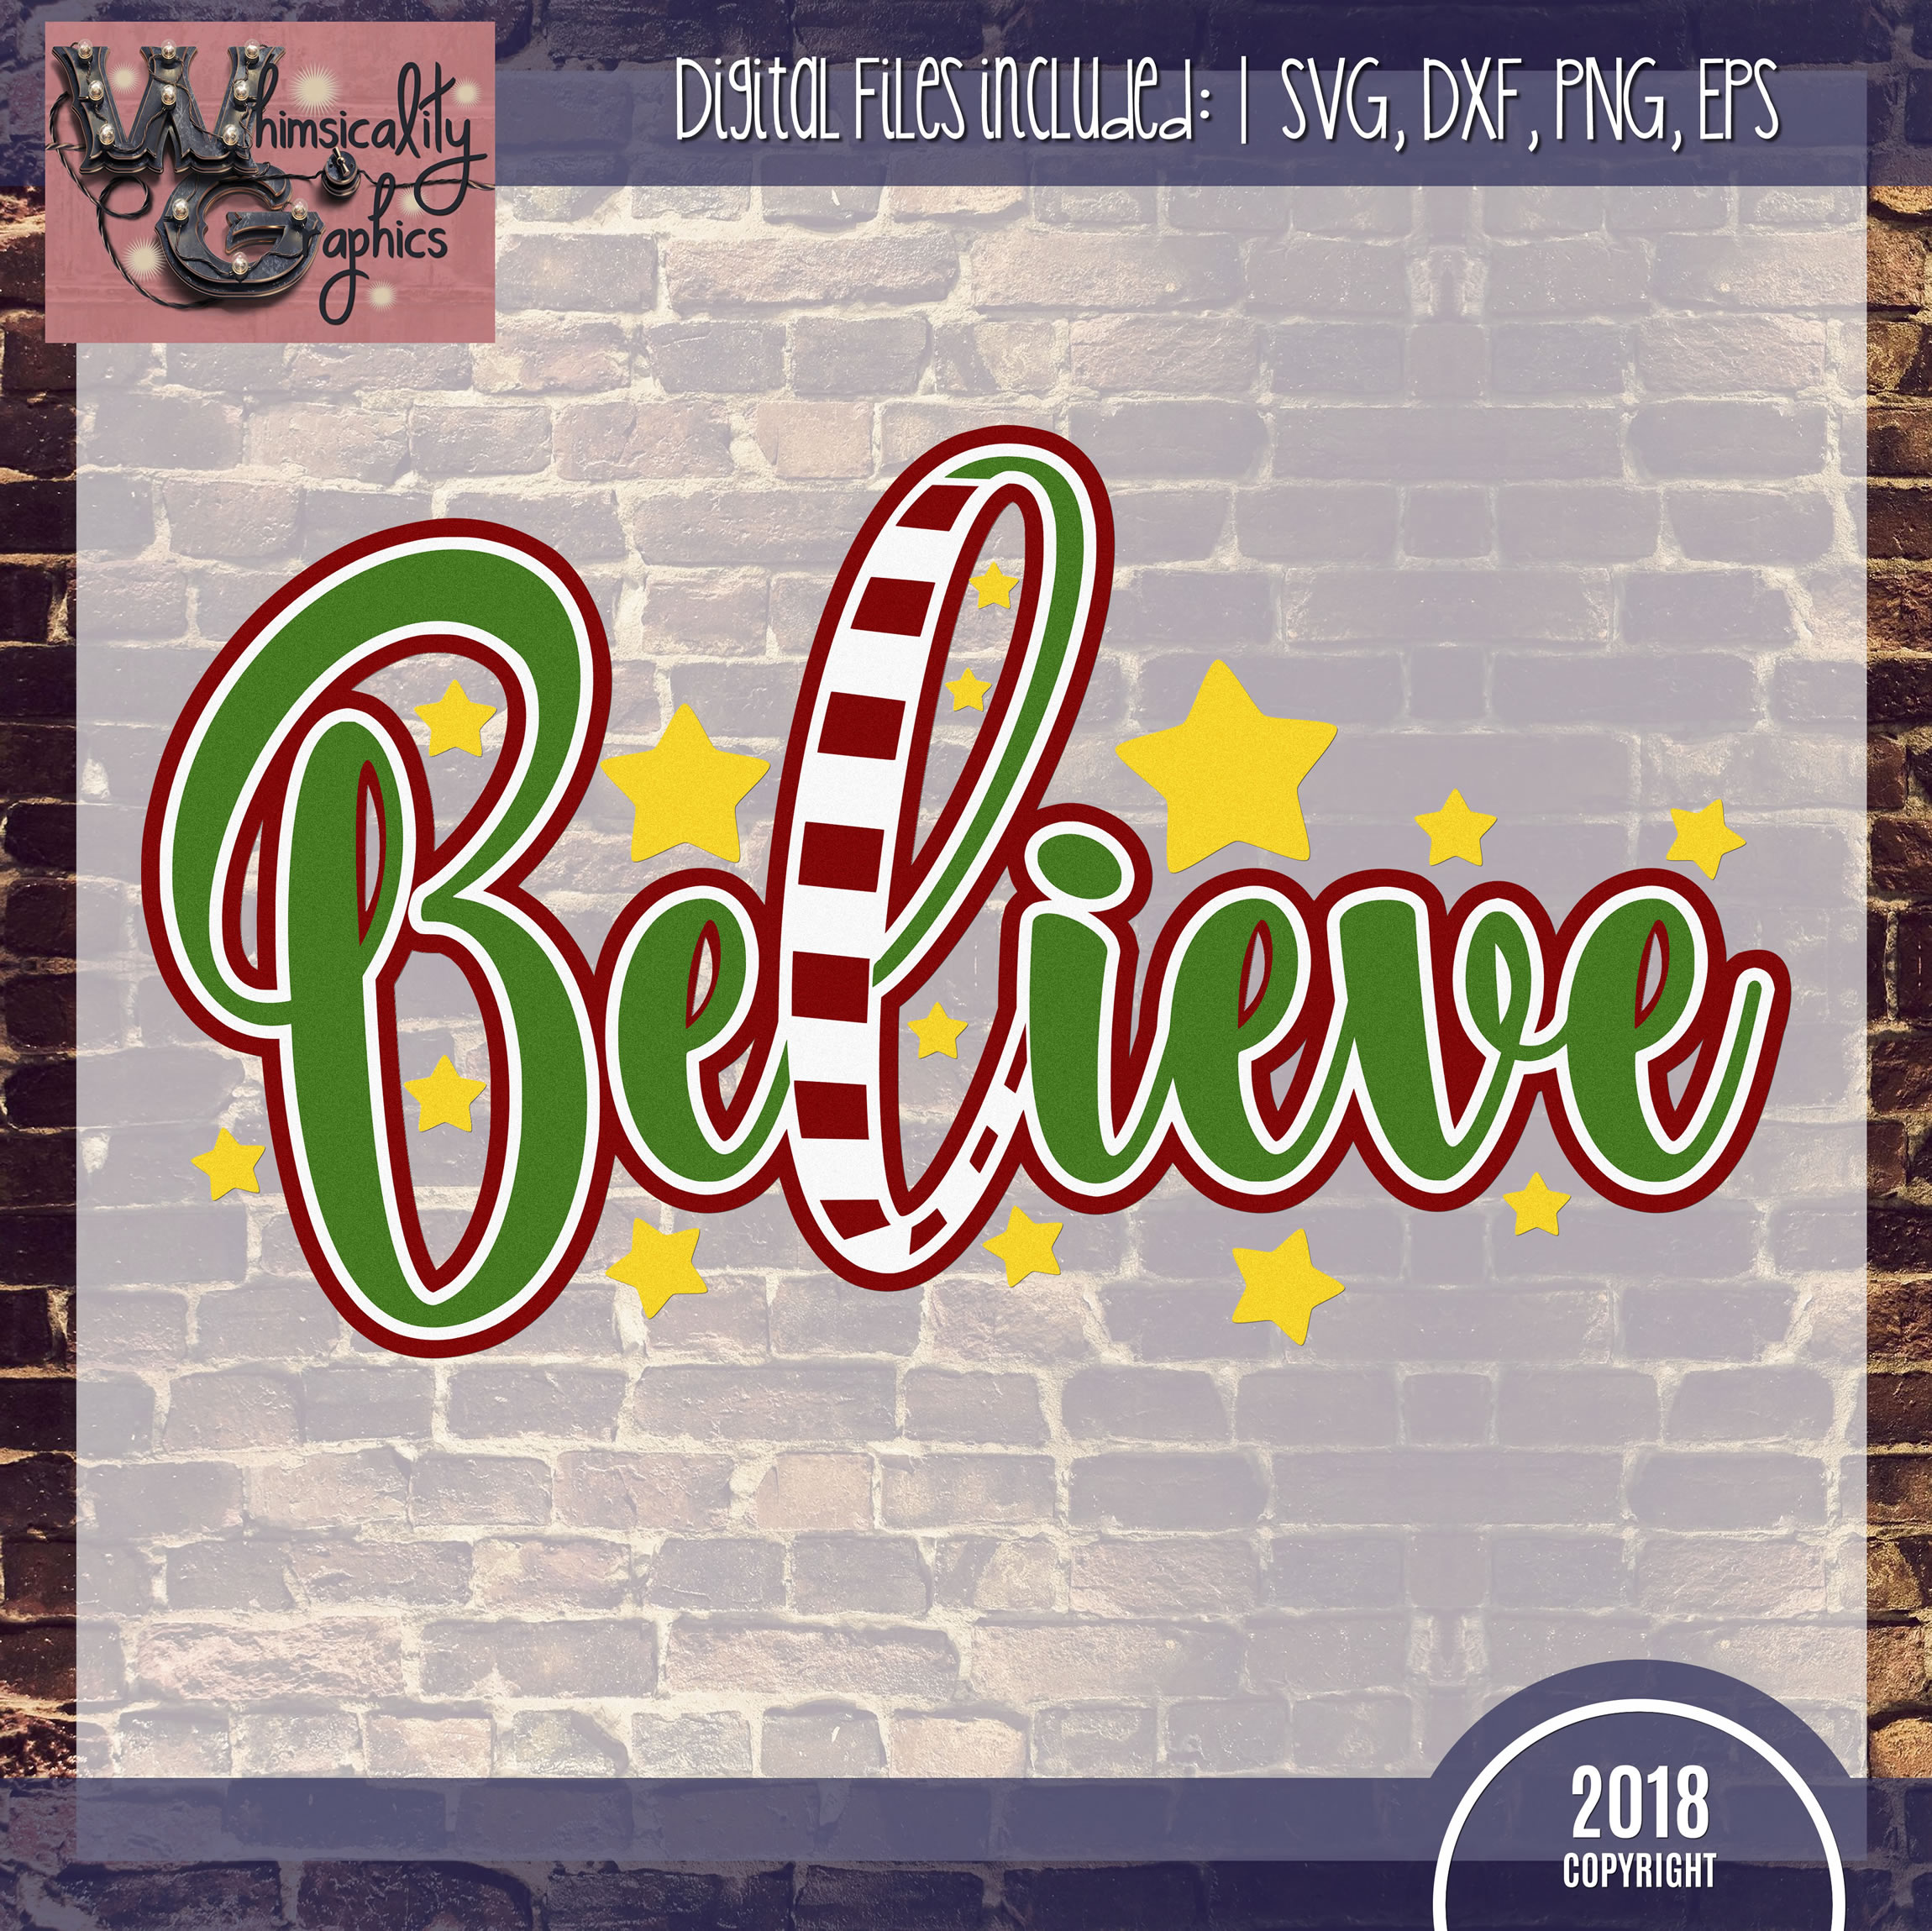 Believe Christmas Design SVG DXF PNG JPG Comm example image 2